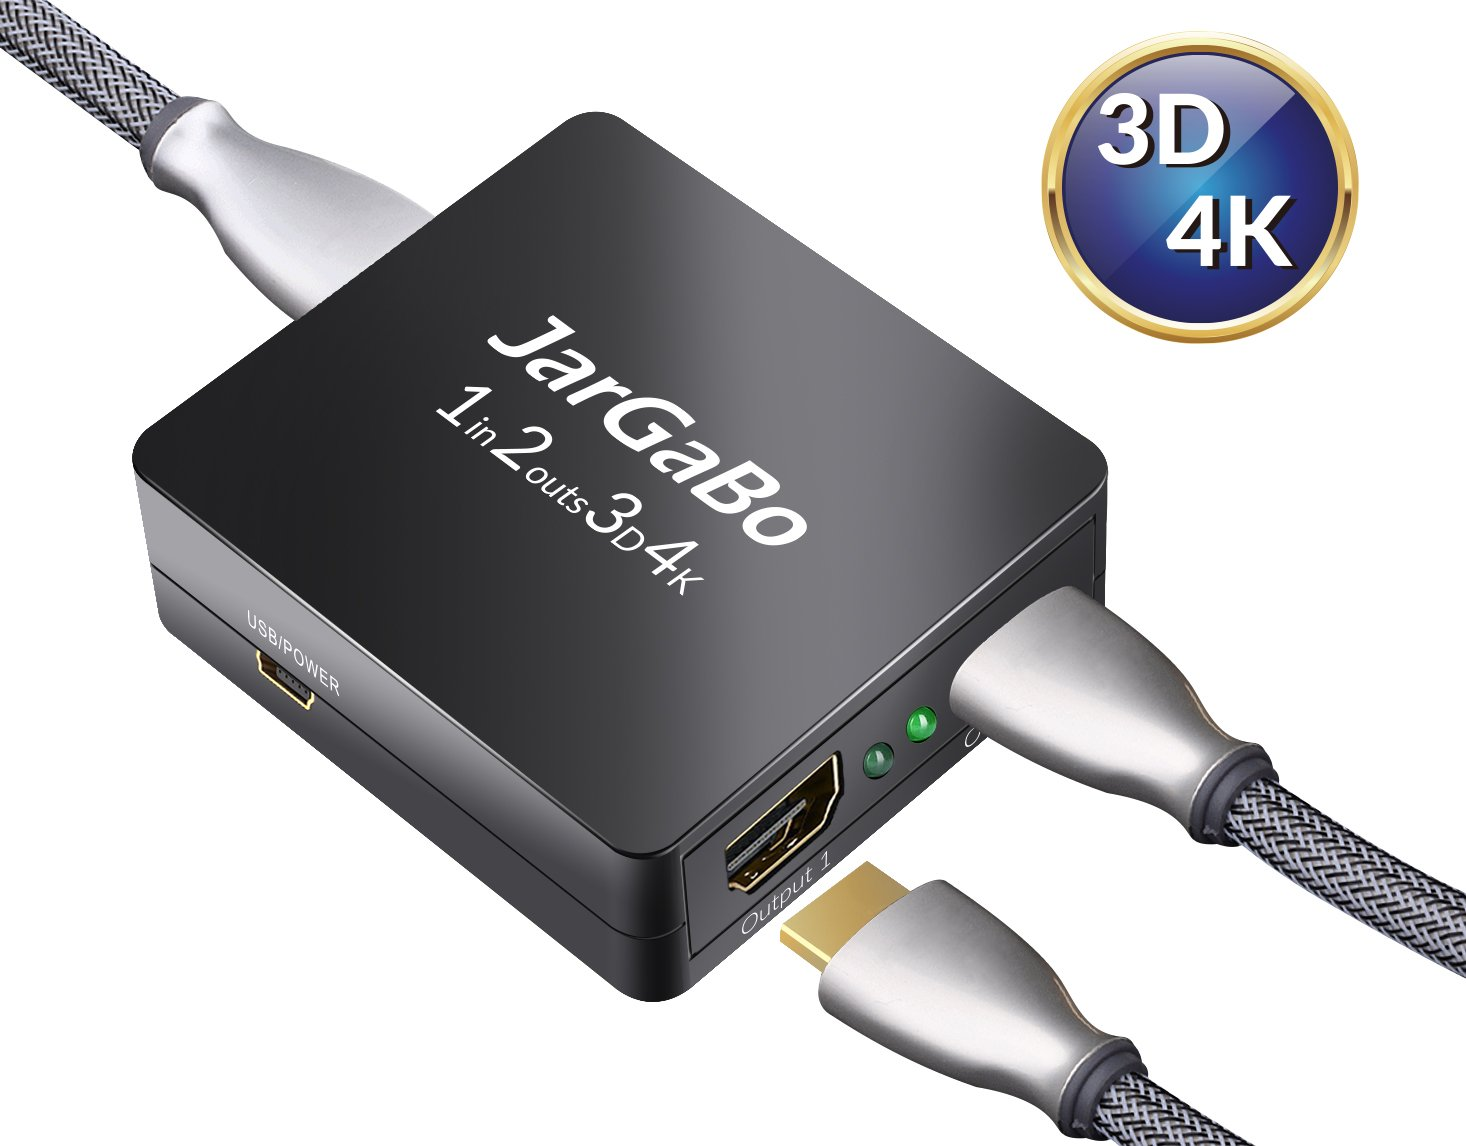 HDMI Splitter 1 in 2 out, JarGaBo 1x2 HDMI Splitter Dual Monitor Supports  HD 1080P 3D and 4K with USB Cable, Black